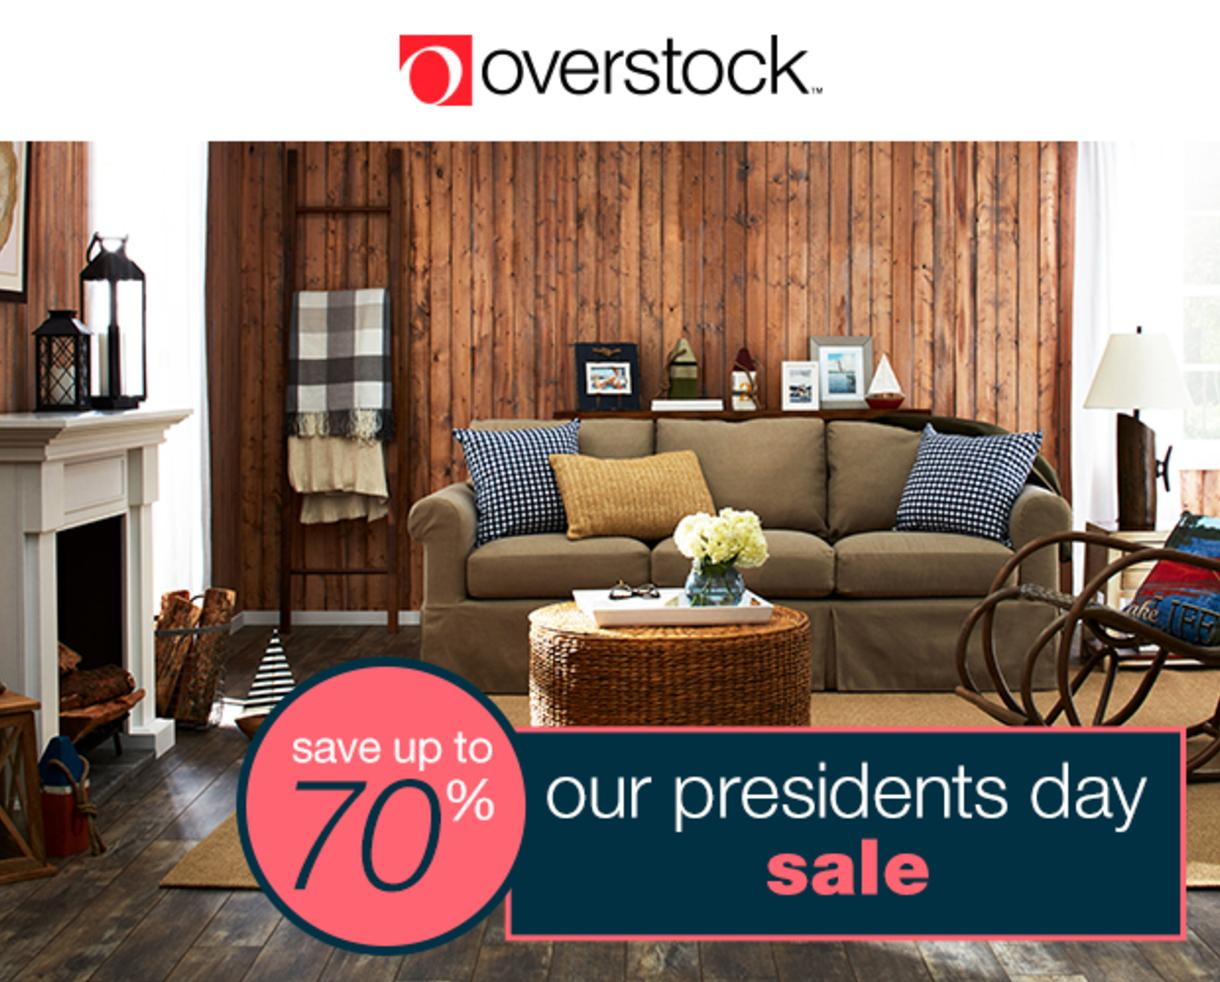 Save Up To 70% Off At Overstocku0027s Presidentu0027s Day Sale!